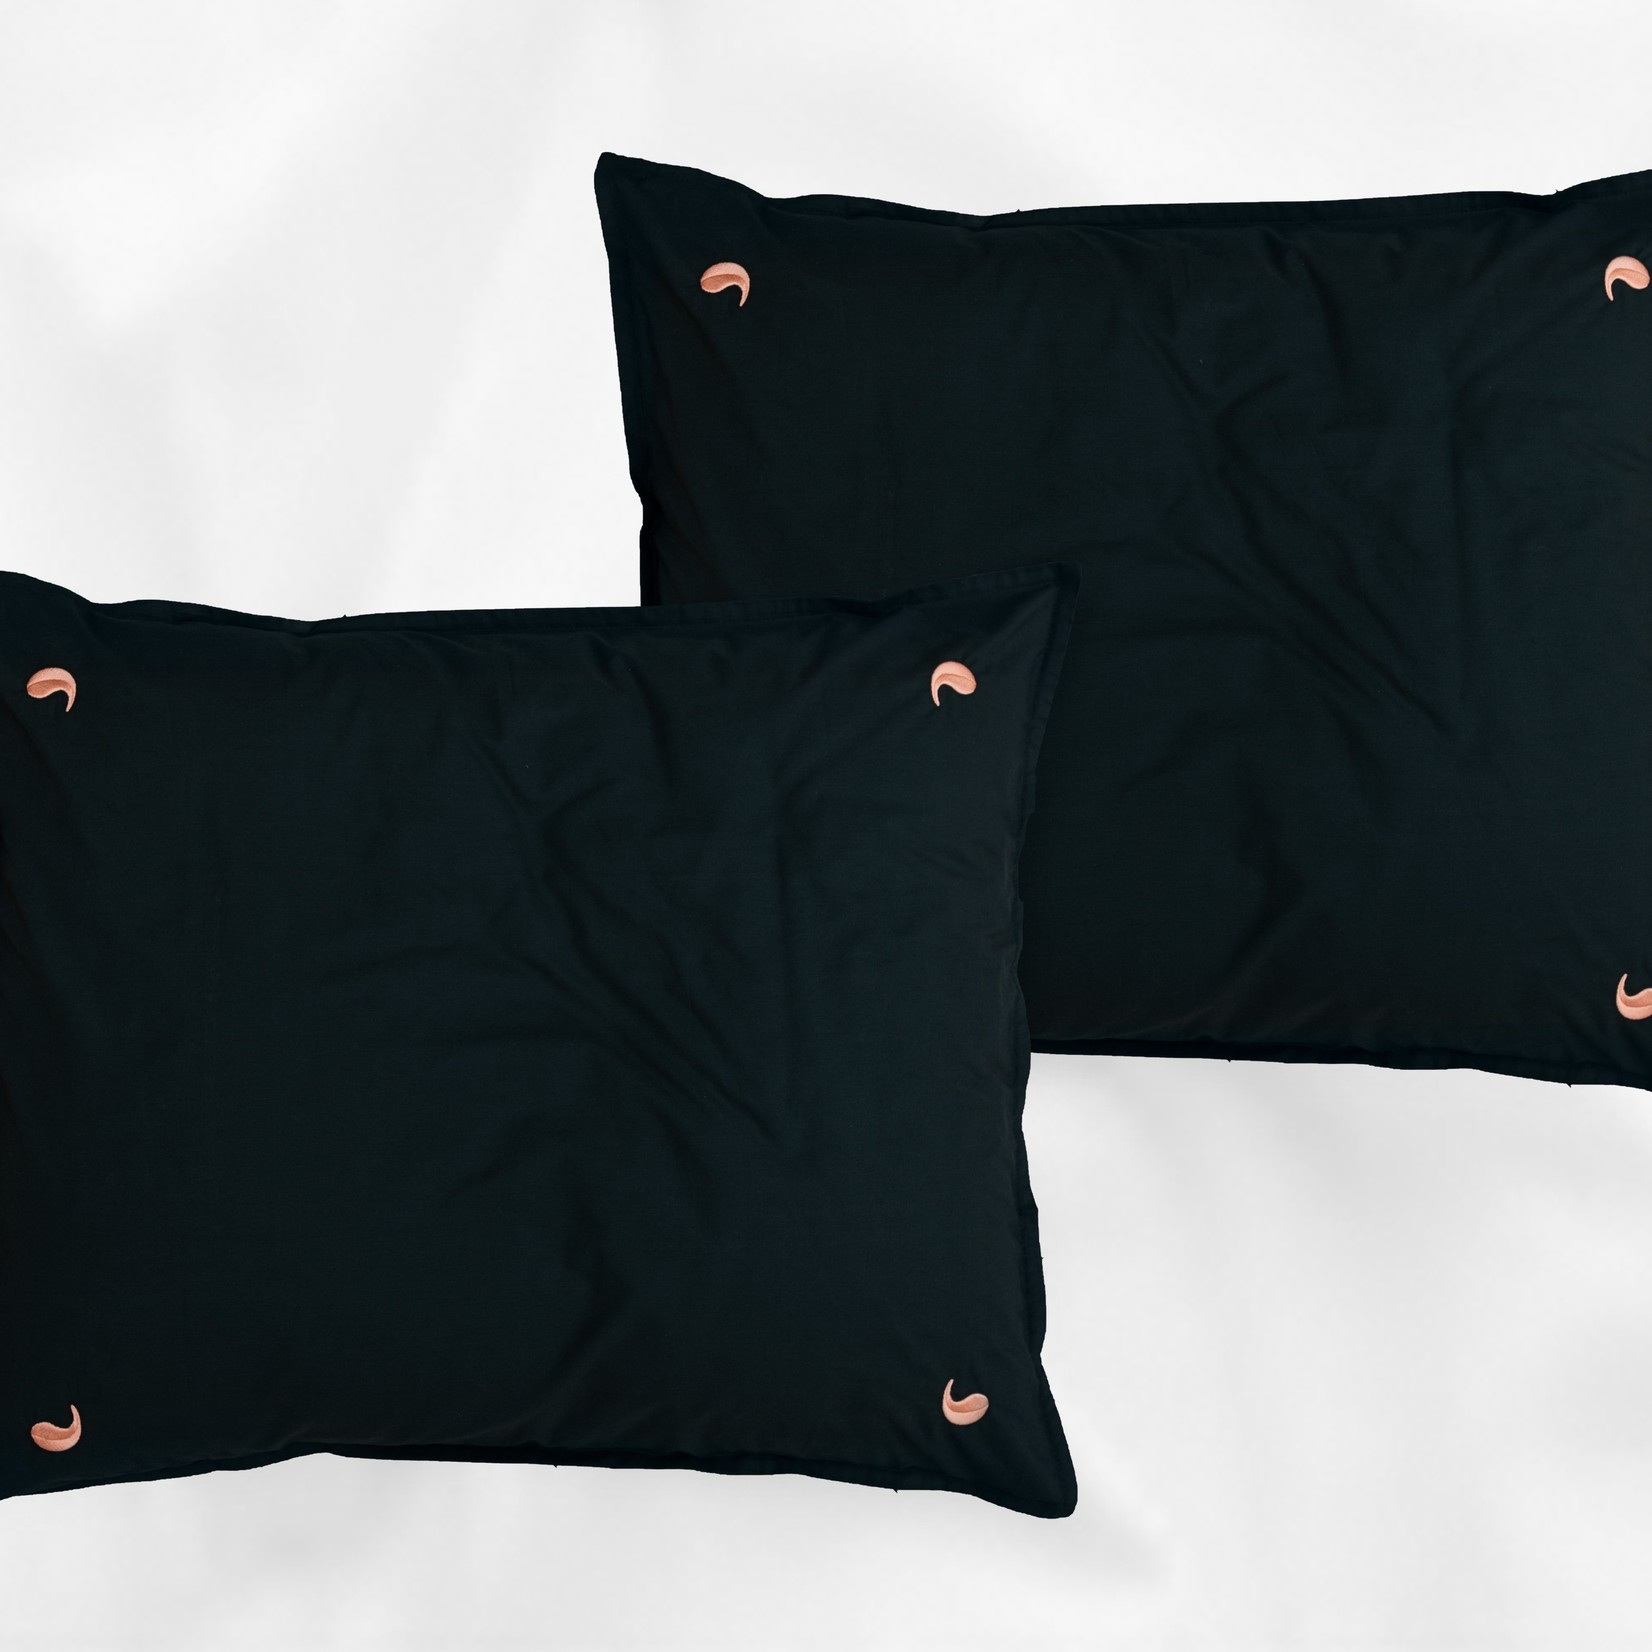 Four Leaves Four Leaves Namal Uyana percale dark green with pink leaves sustainable duvet cover